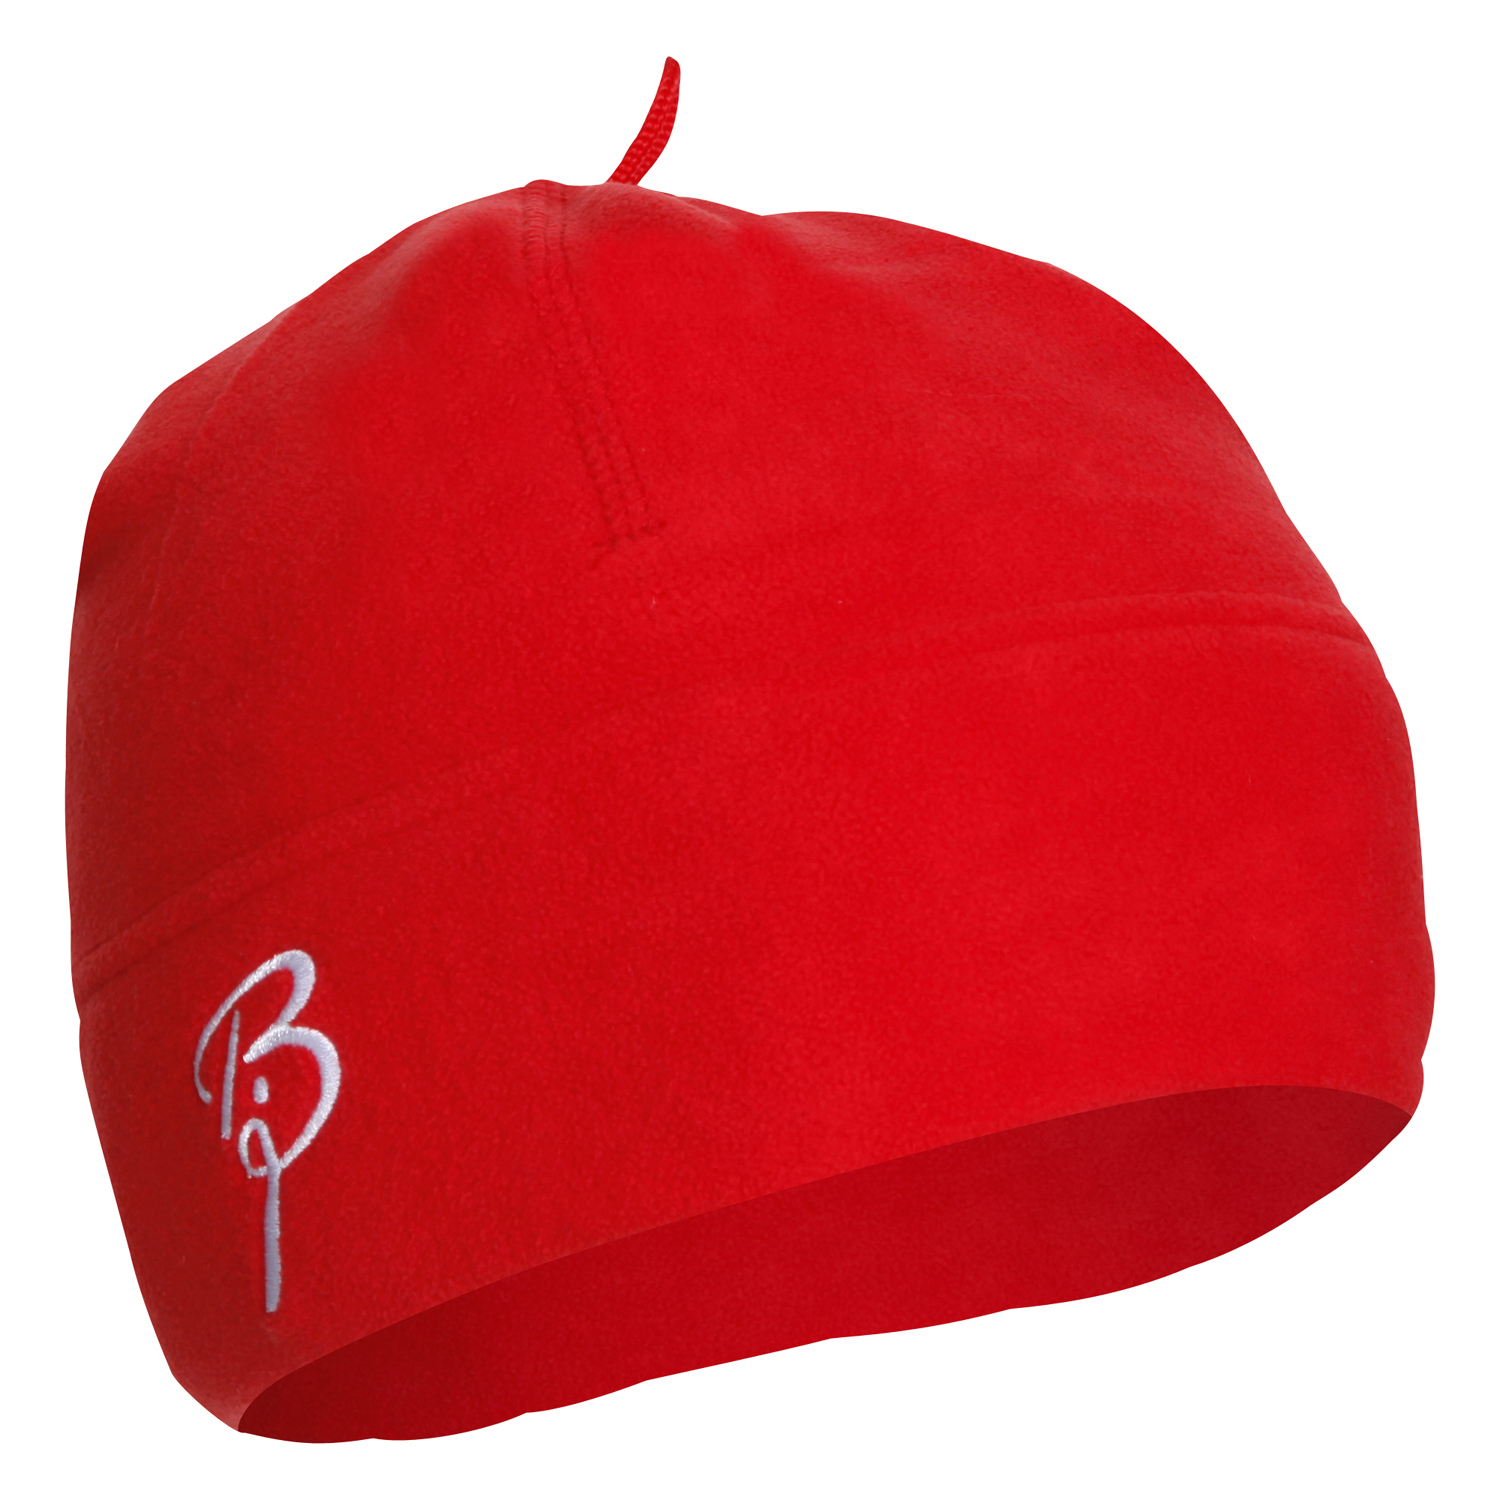 Шапка лыжная Bjorn Daehlie Hat Microfleece red